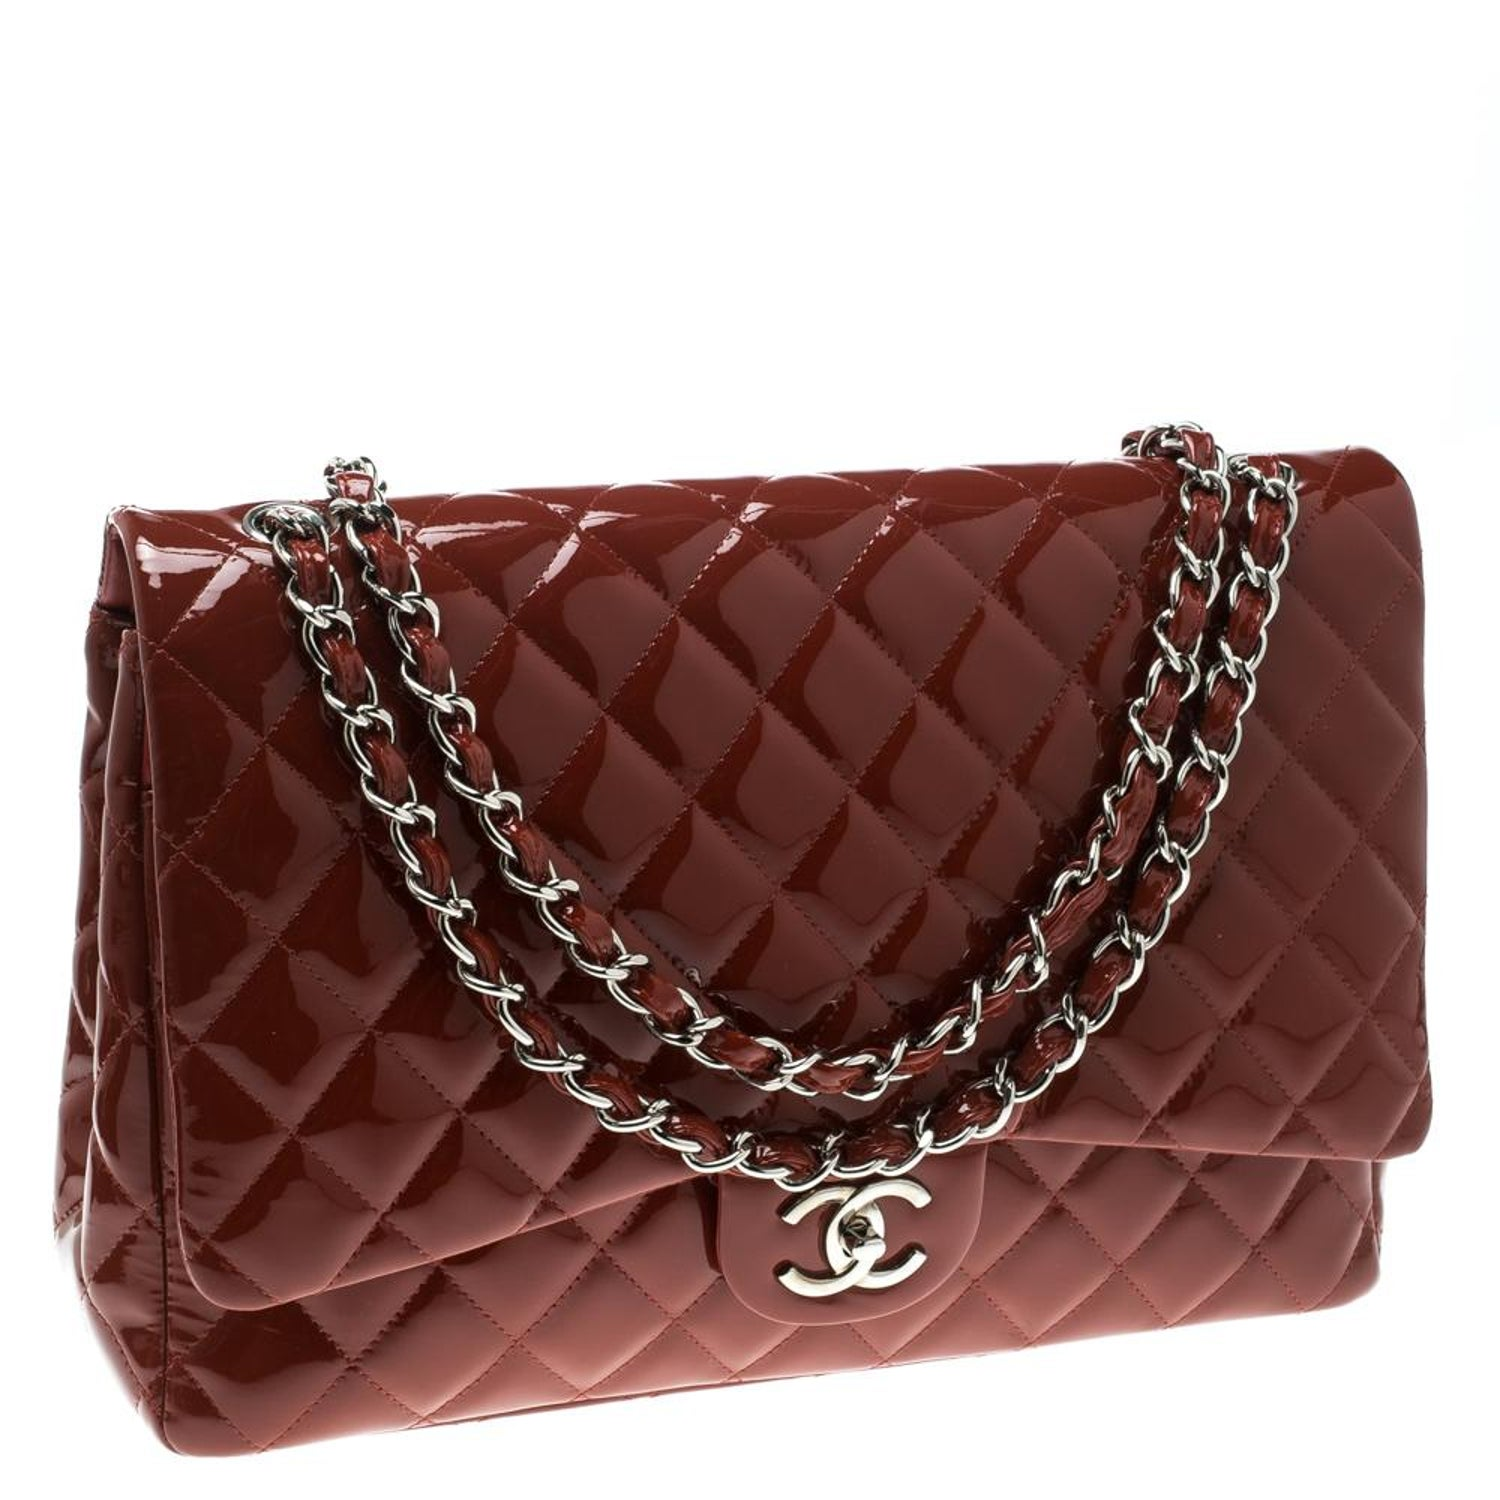 4eb3ef67d0a1 Chanel Red Quilted Patent Leather Maxi Classic Double Flap Bag For Sale at  1stdibs